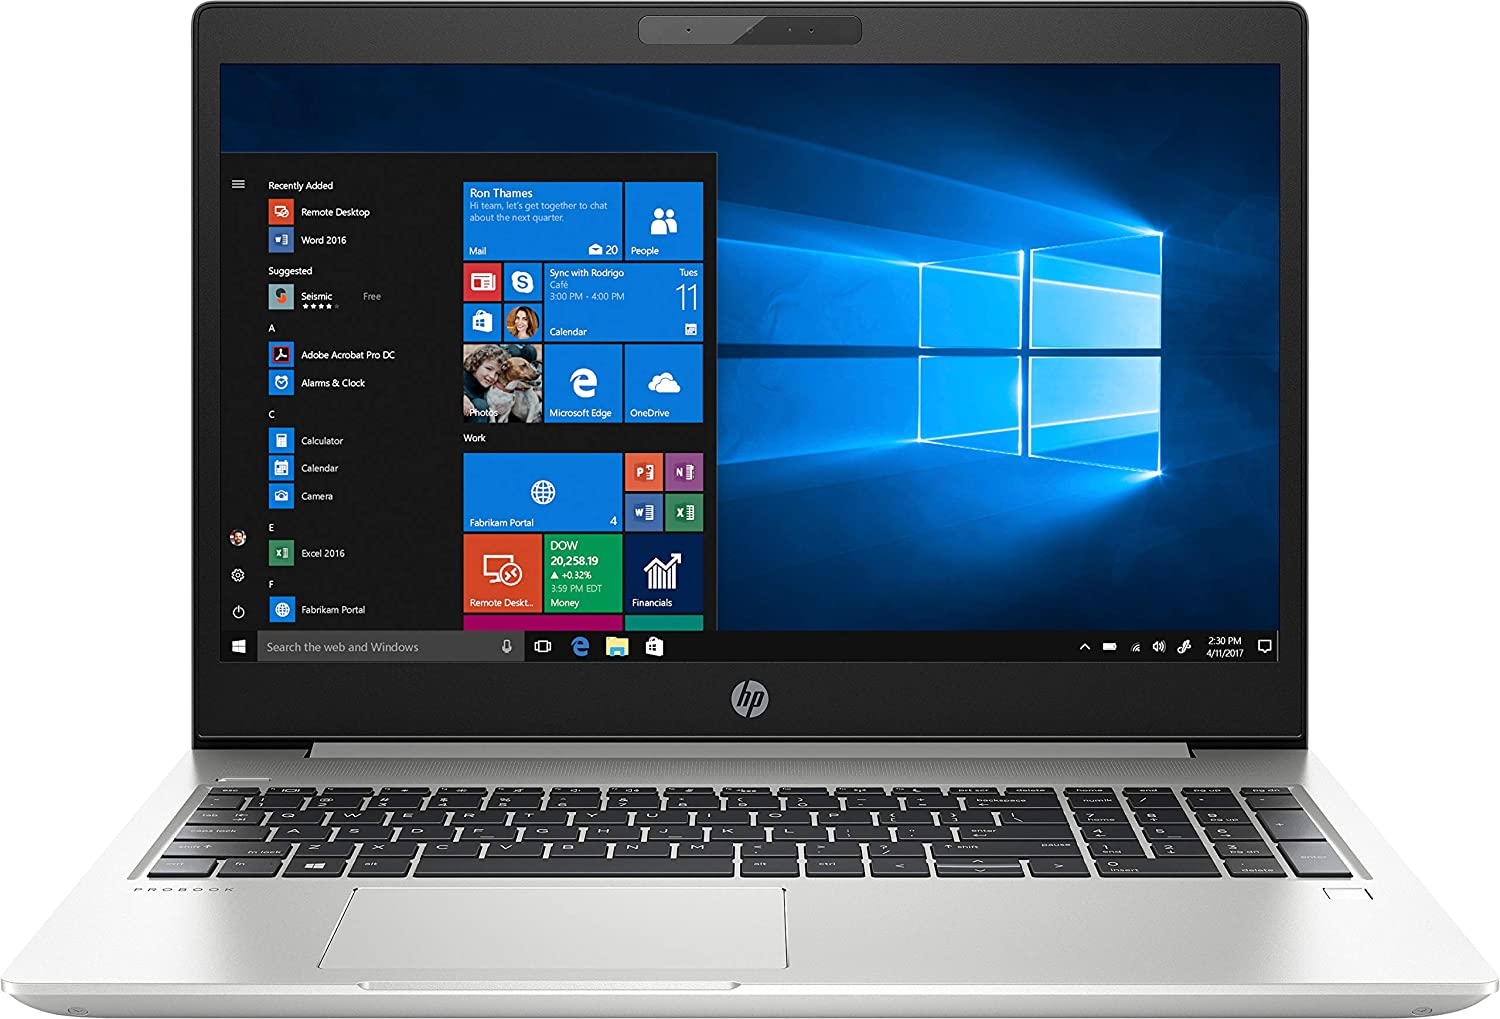 "HP ProBook 450 G6 15.6"" LCD Notebook - Intel Core i7 (8th Gen) i7-8565U Quad-core (4 Core) 1.80 GHz - 16 GB DDR4 SDRAM - 256 GB SSD - Windows 10 Pro 64-bit (English) - 1920 x 1080 - Natural Silve"